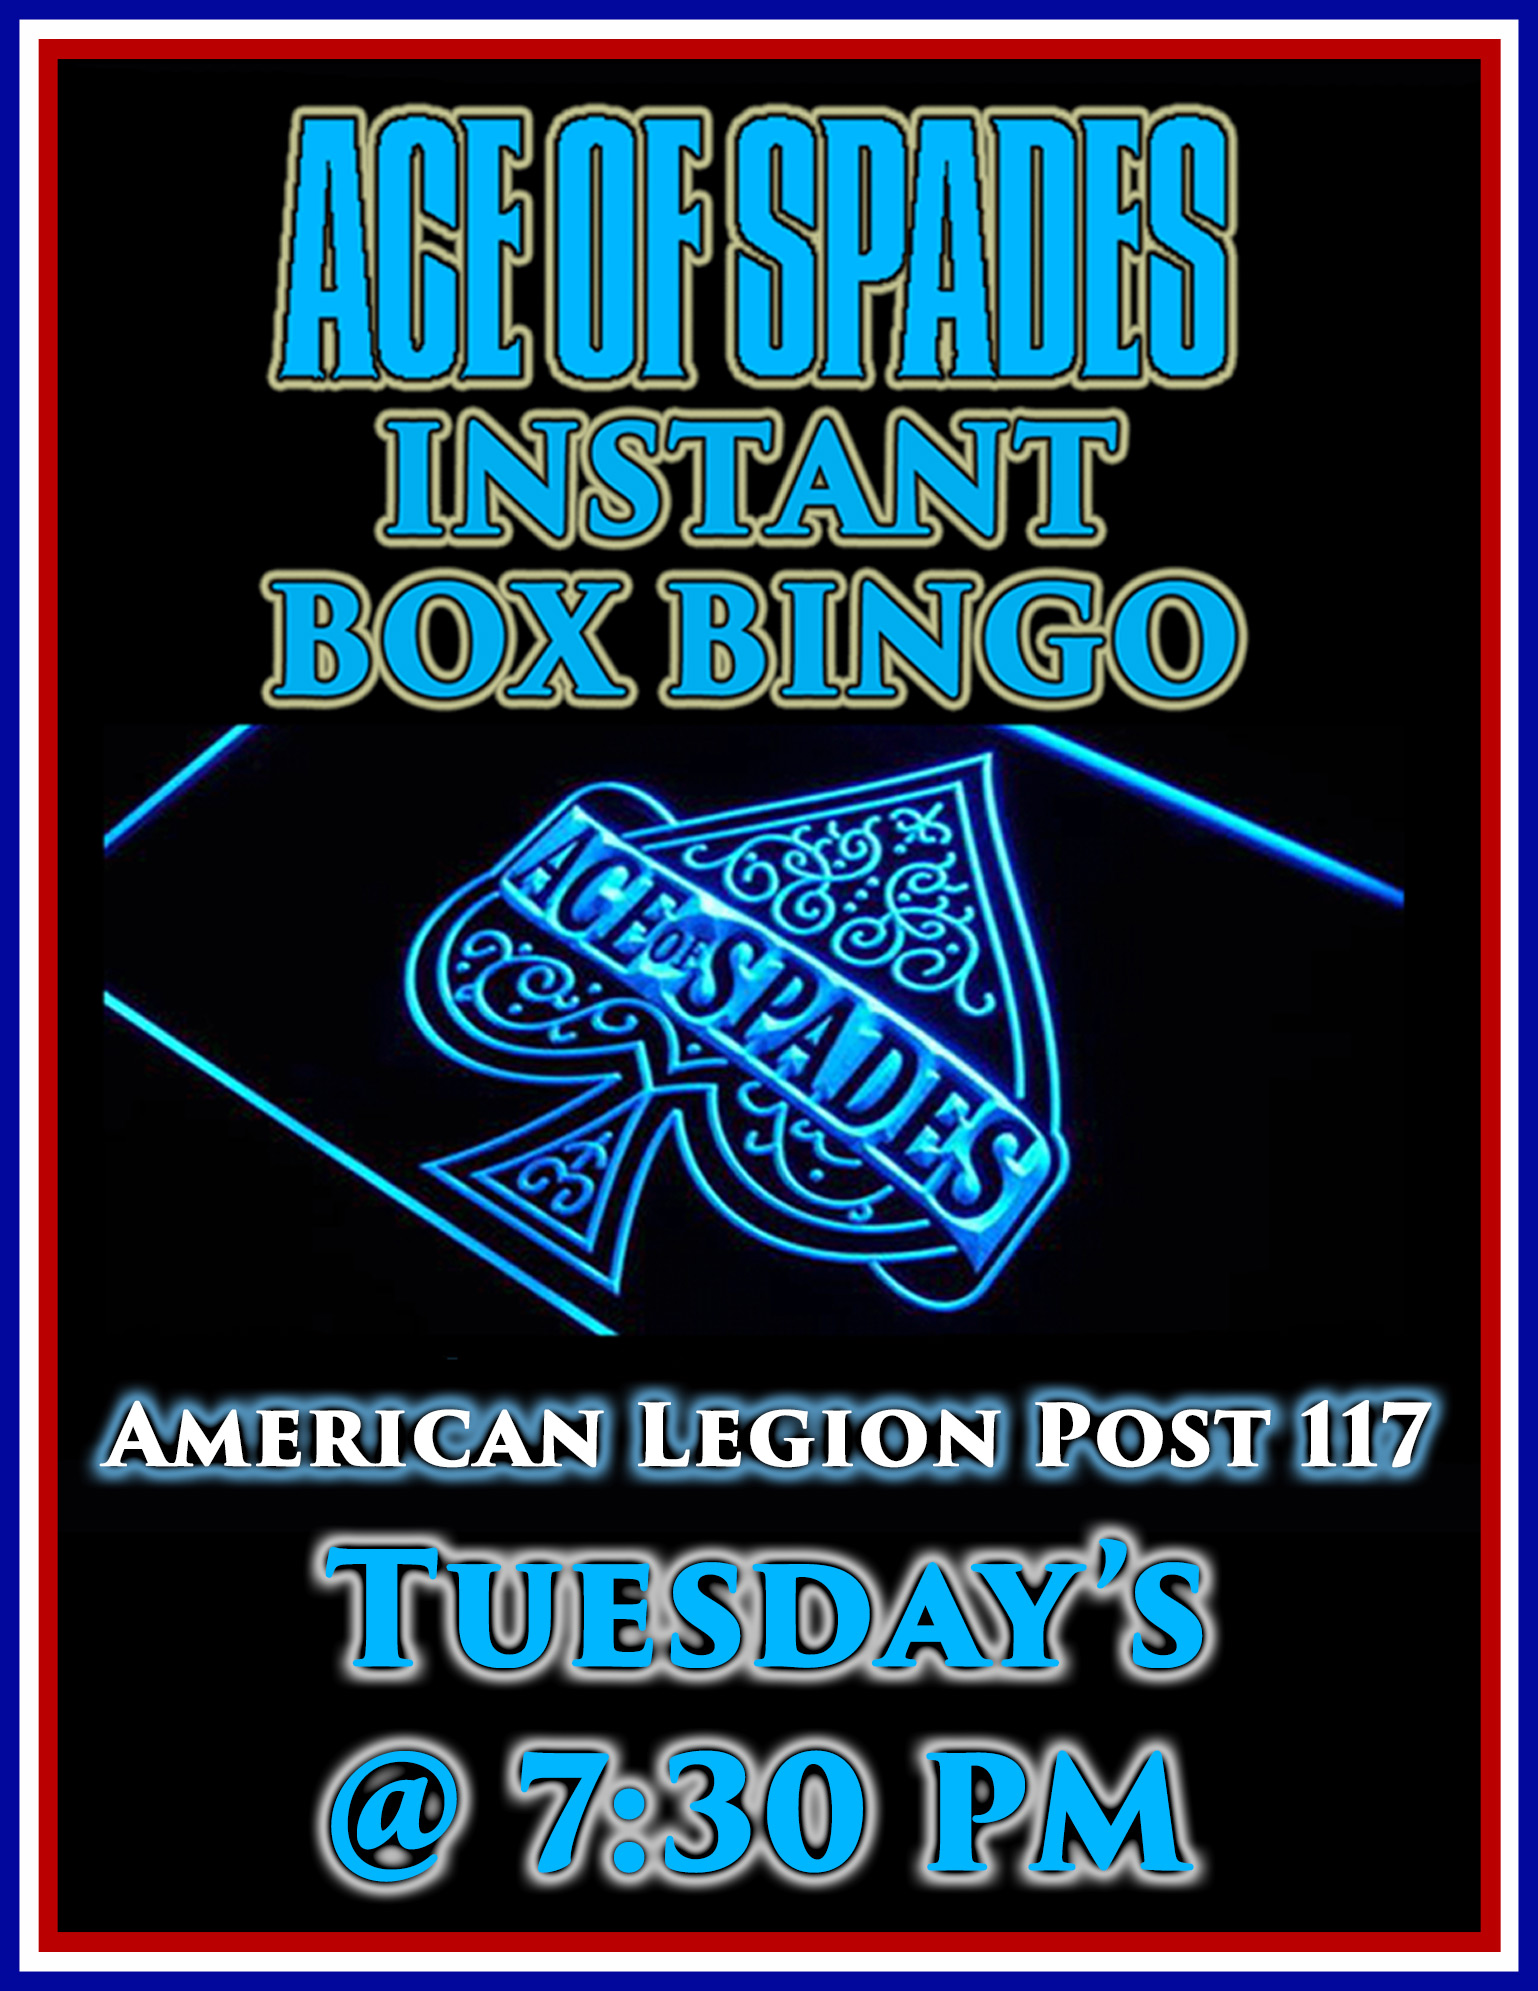 Ace Of Spades / Instant Box Bingo @ American Legion Post 117 | Palm Bay | Florida | United States